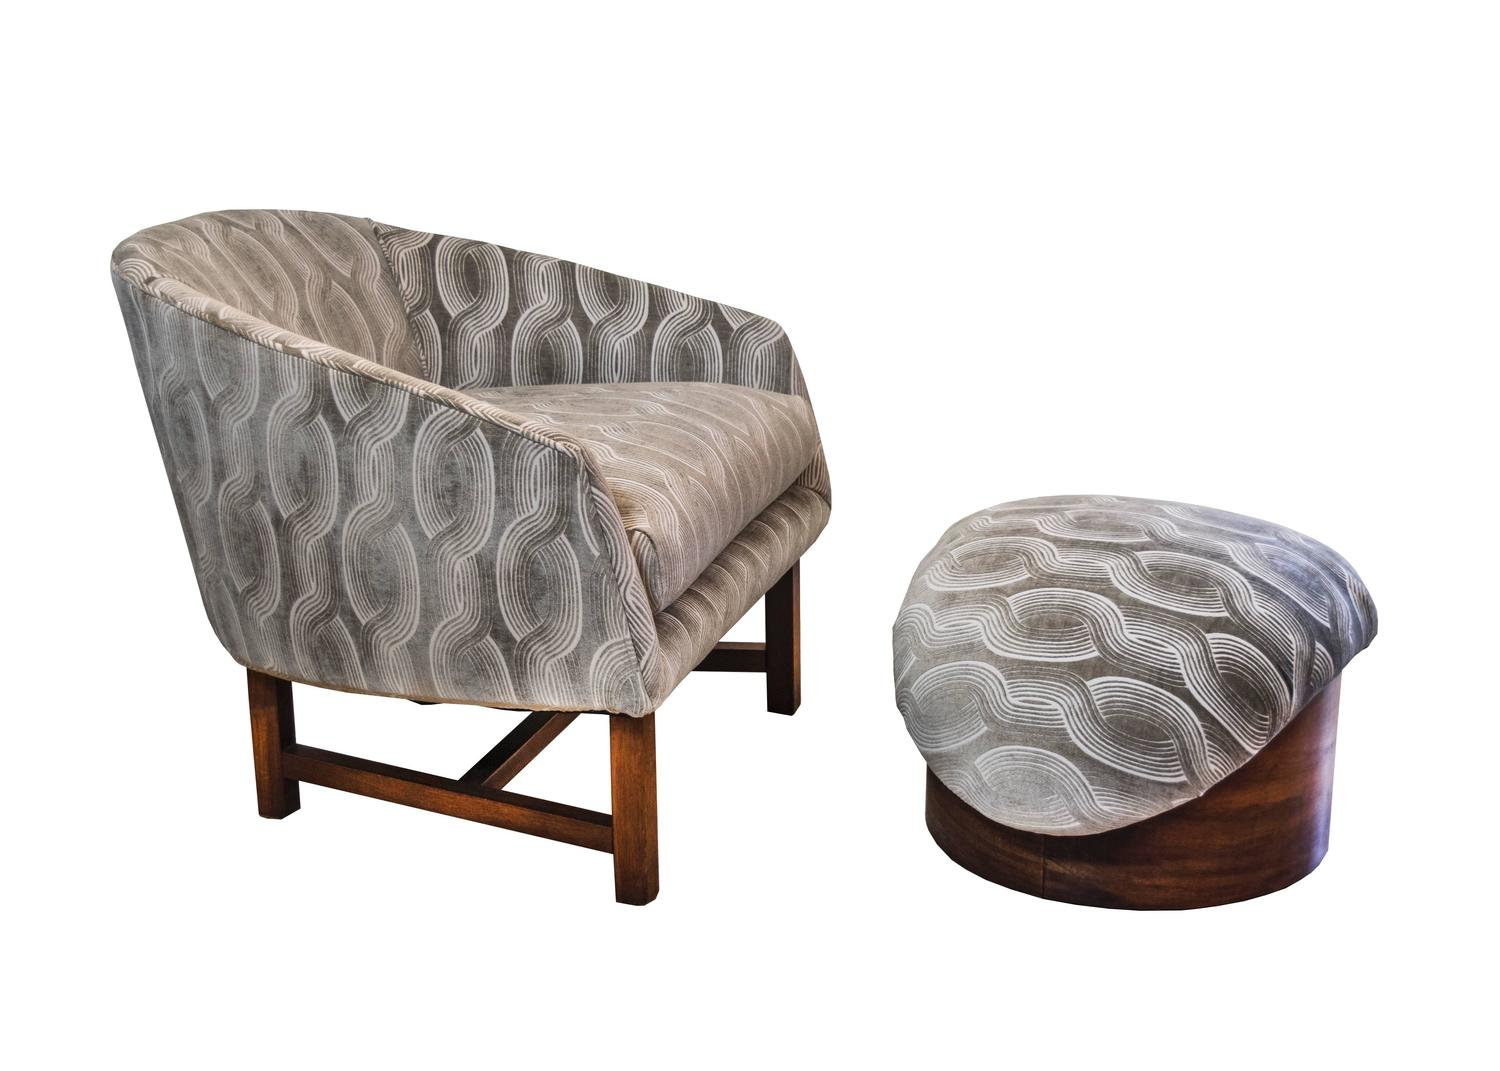 MidCentury Modern Reading Chair and Ottoman For Sale at